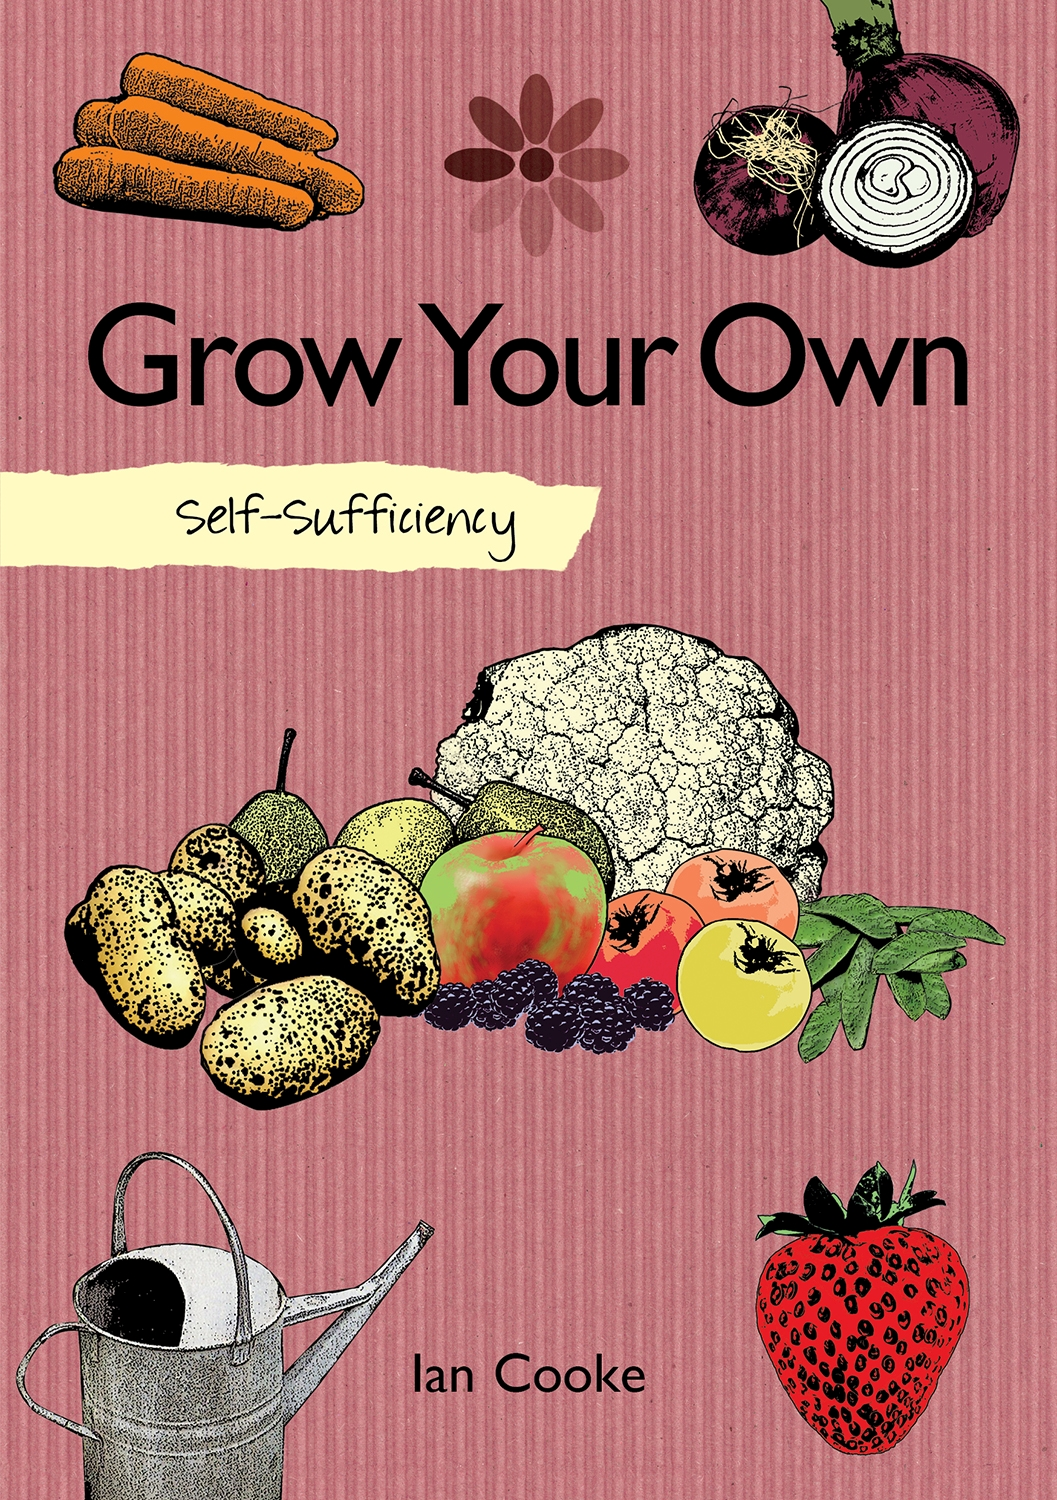 Self-Sufficiency: Grow Your Own